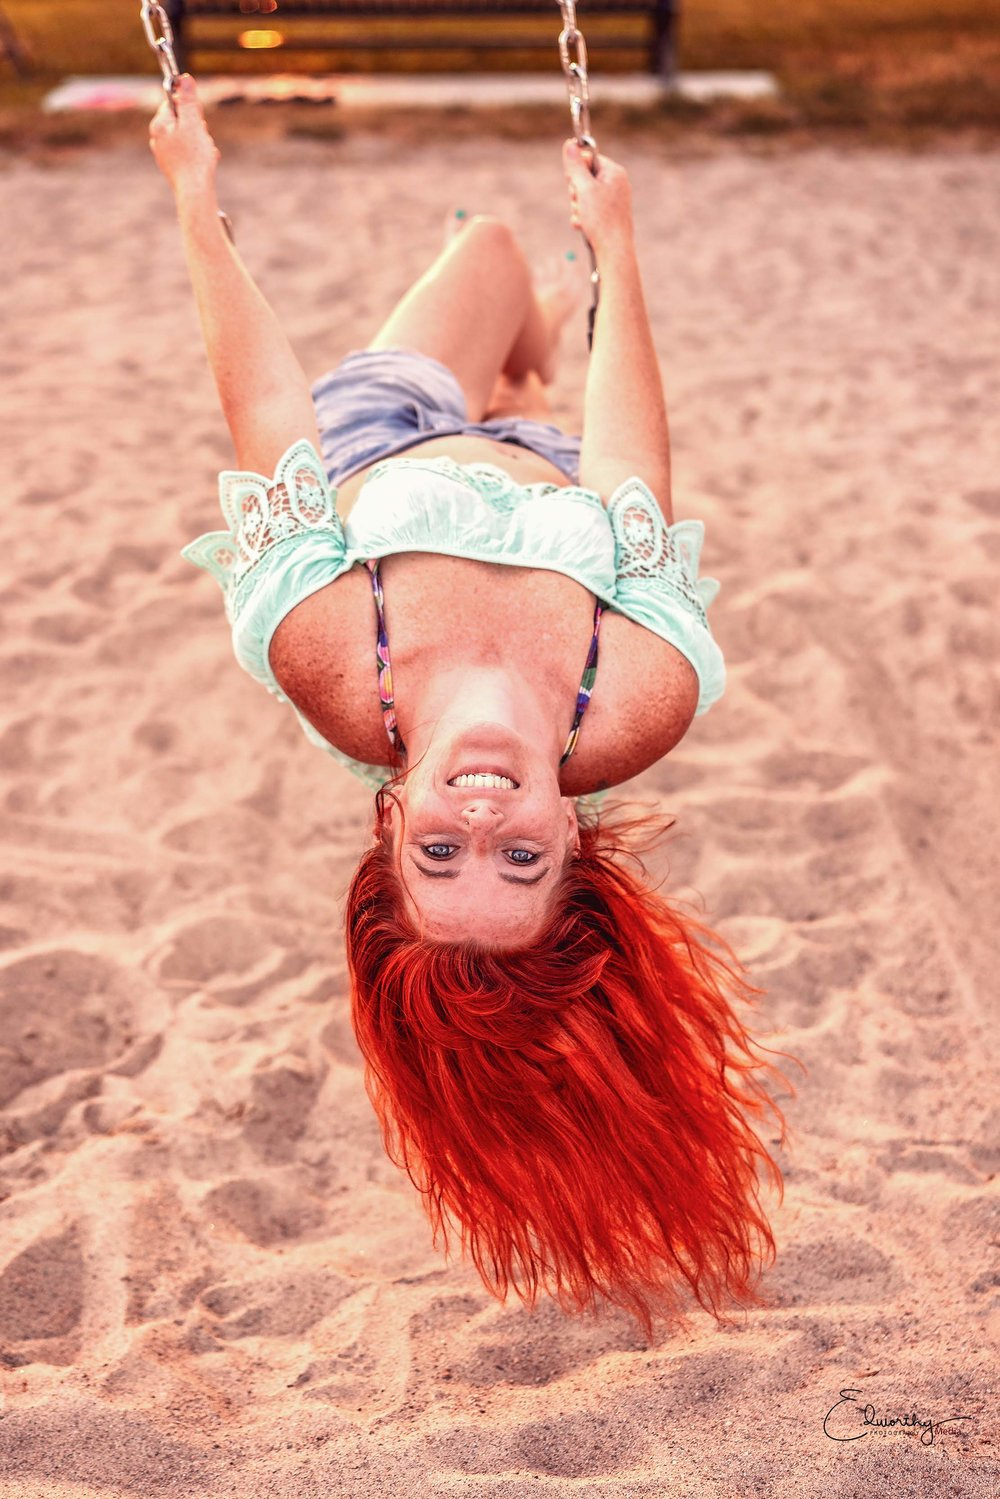 Red head on a swing